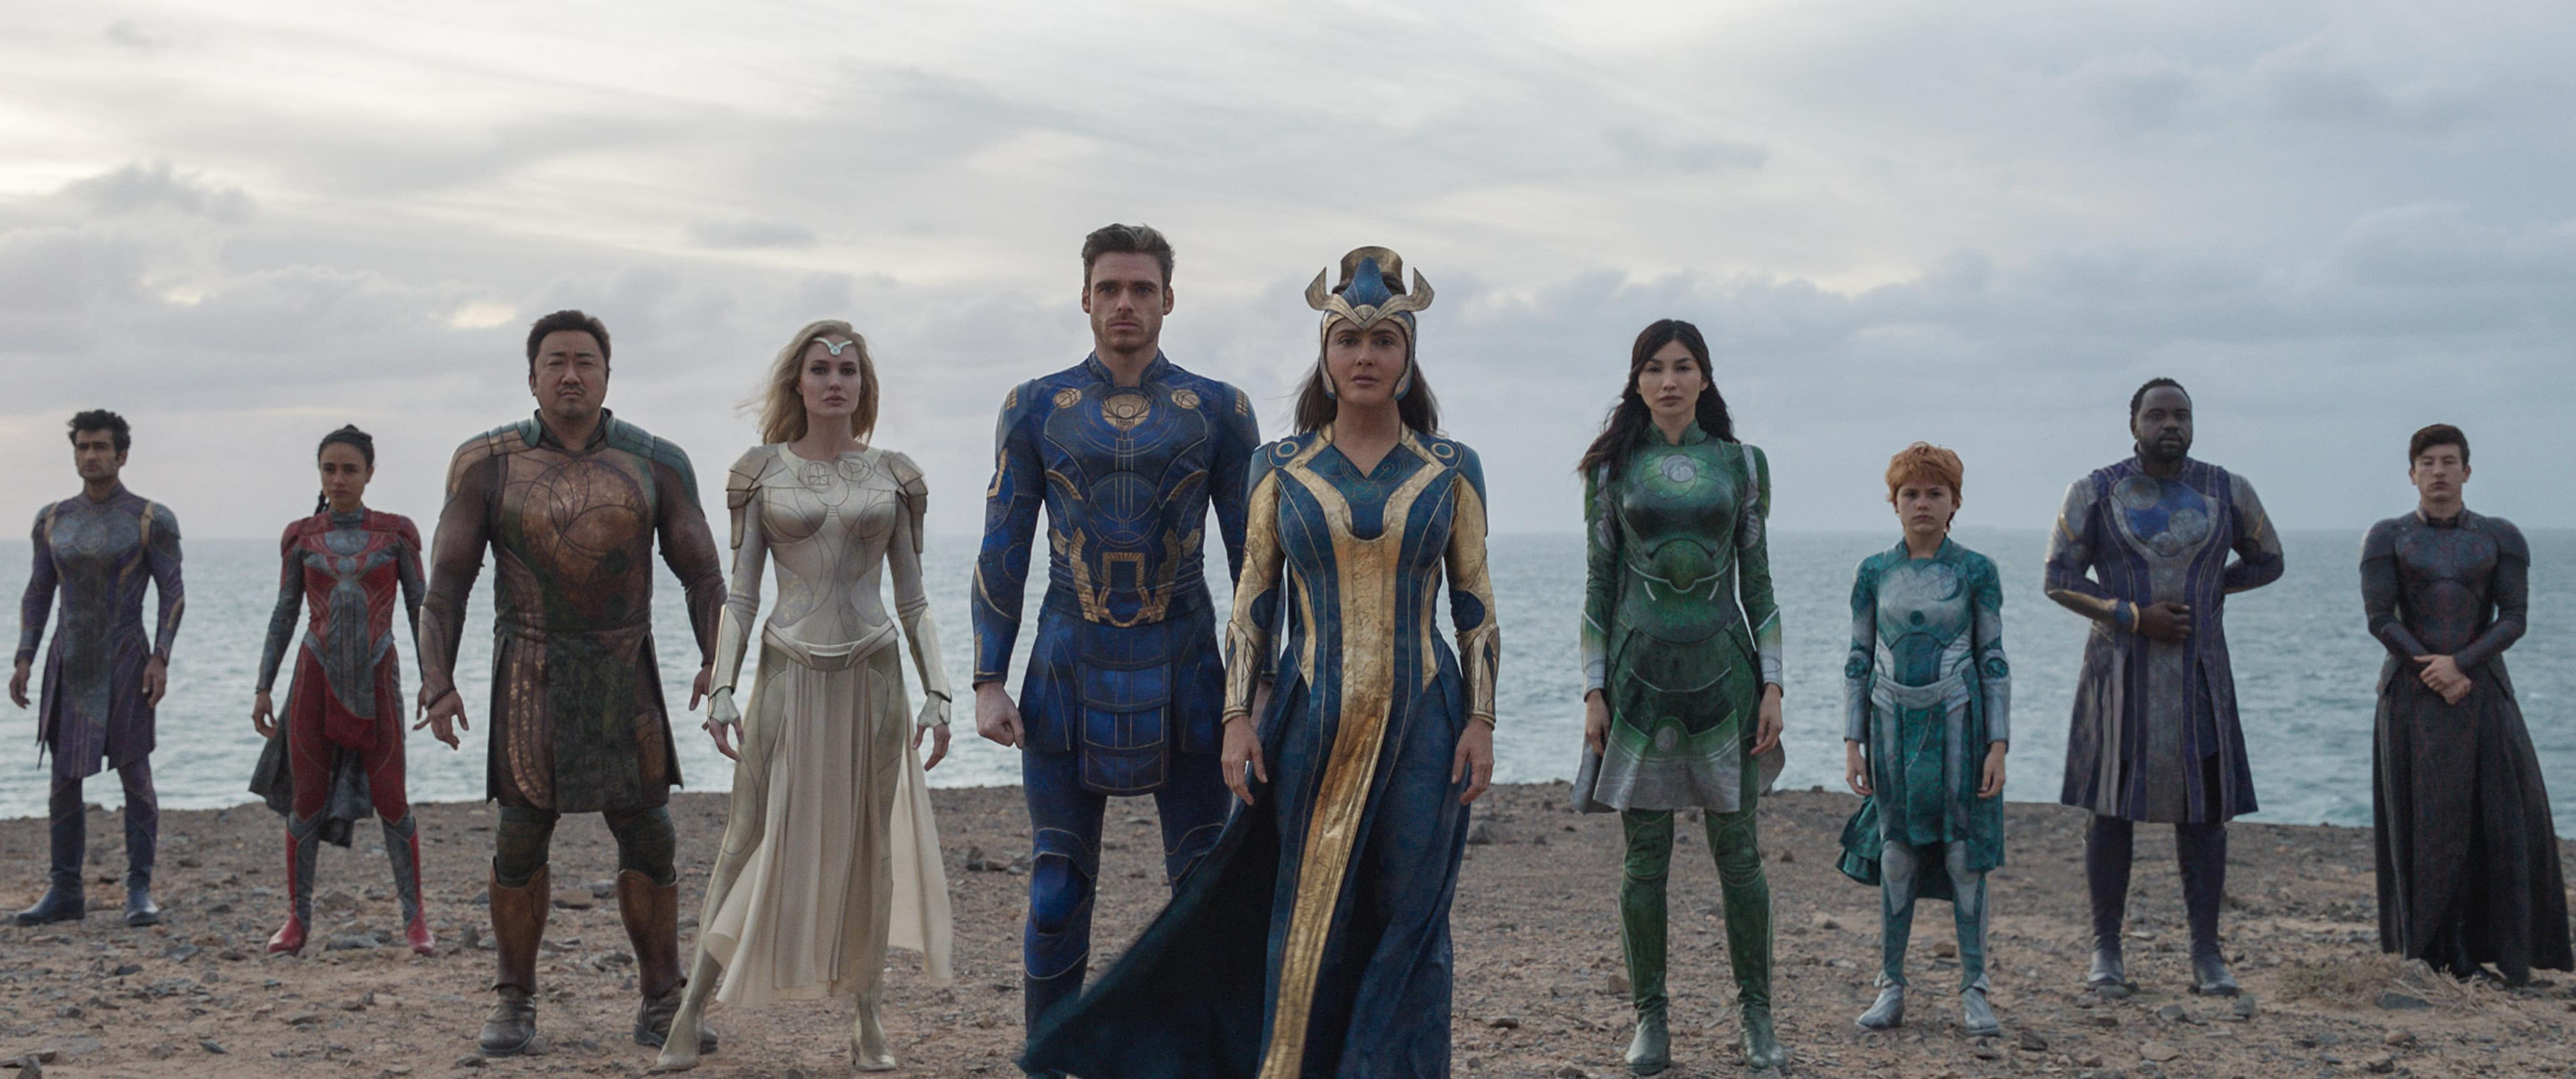 Ten Marvel Eternals characters standing side by side on a beach